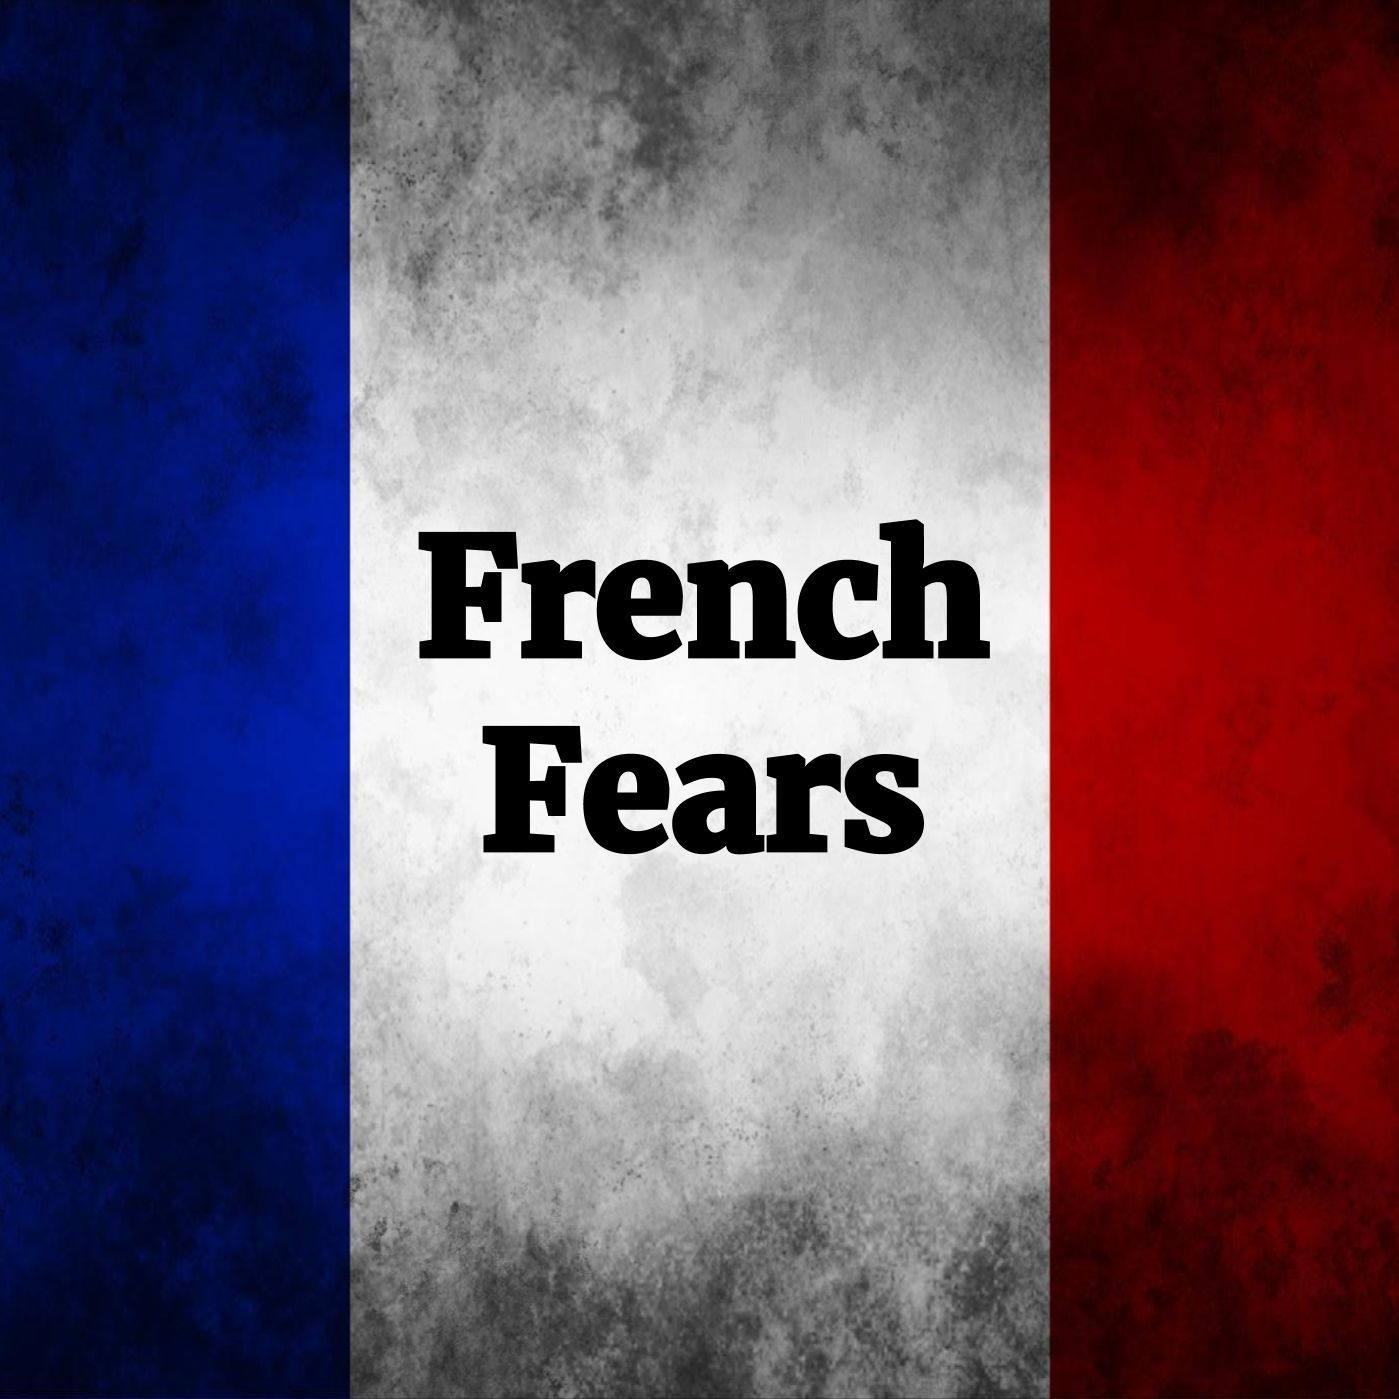 French Fears- Episode 2: Race in the Immigration Debate